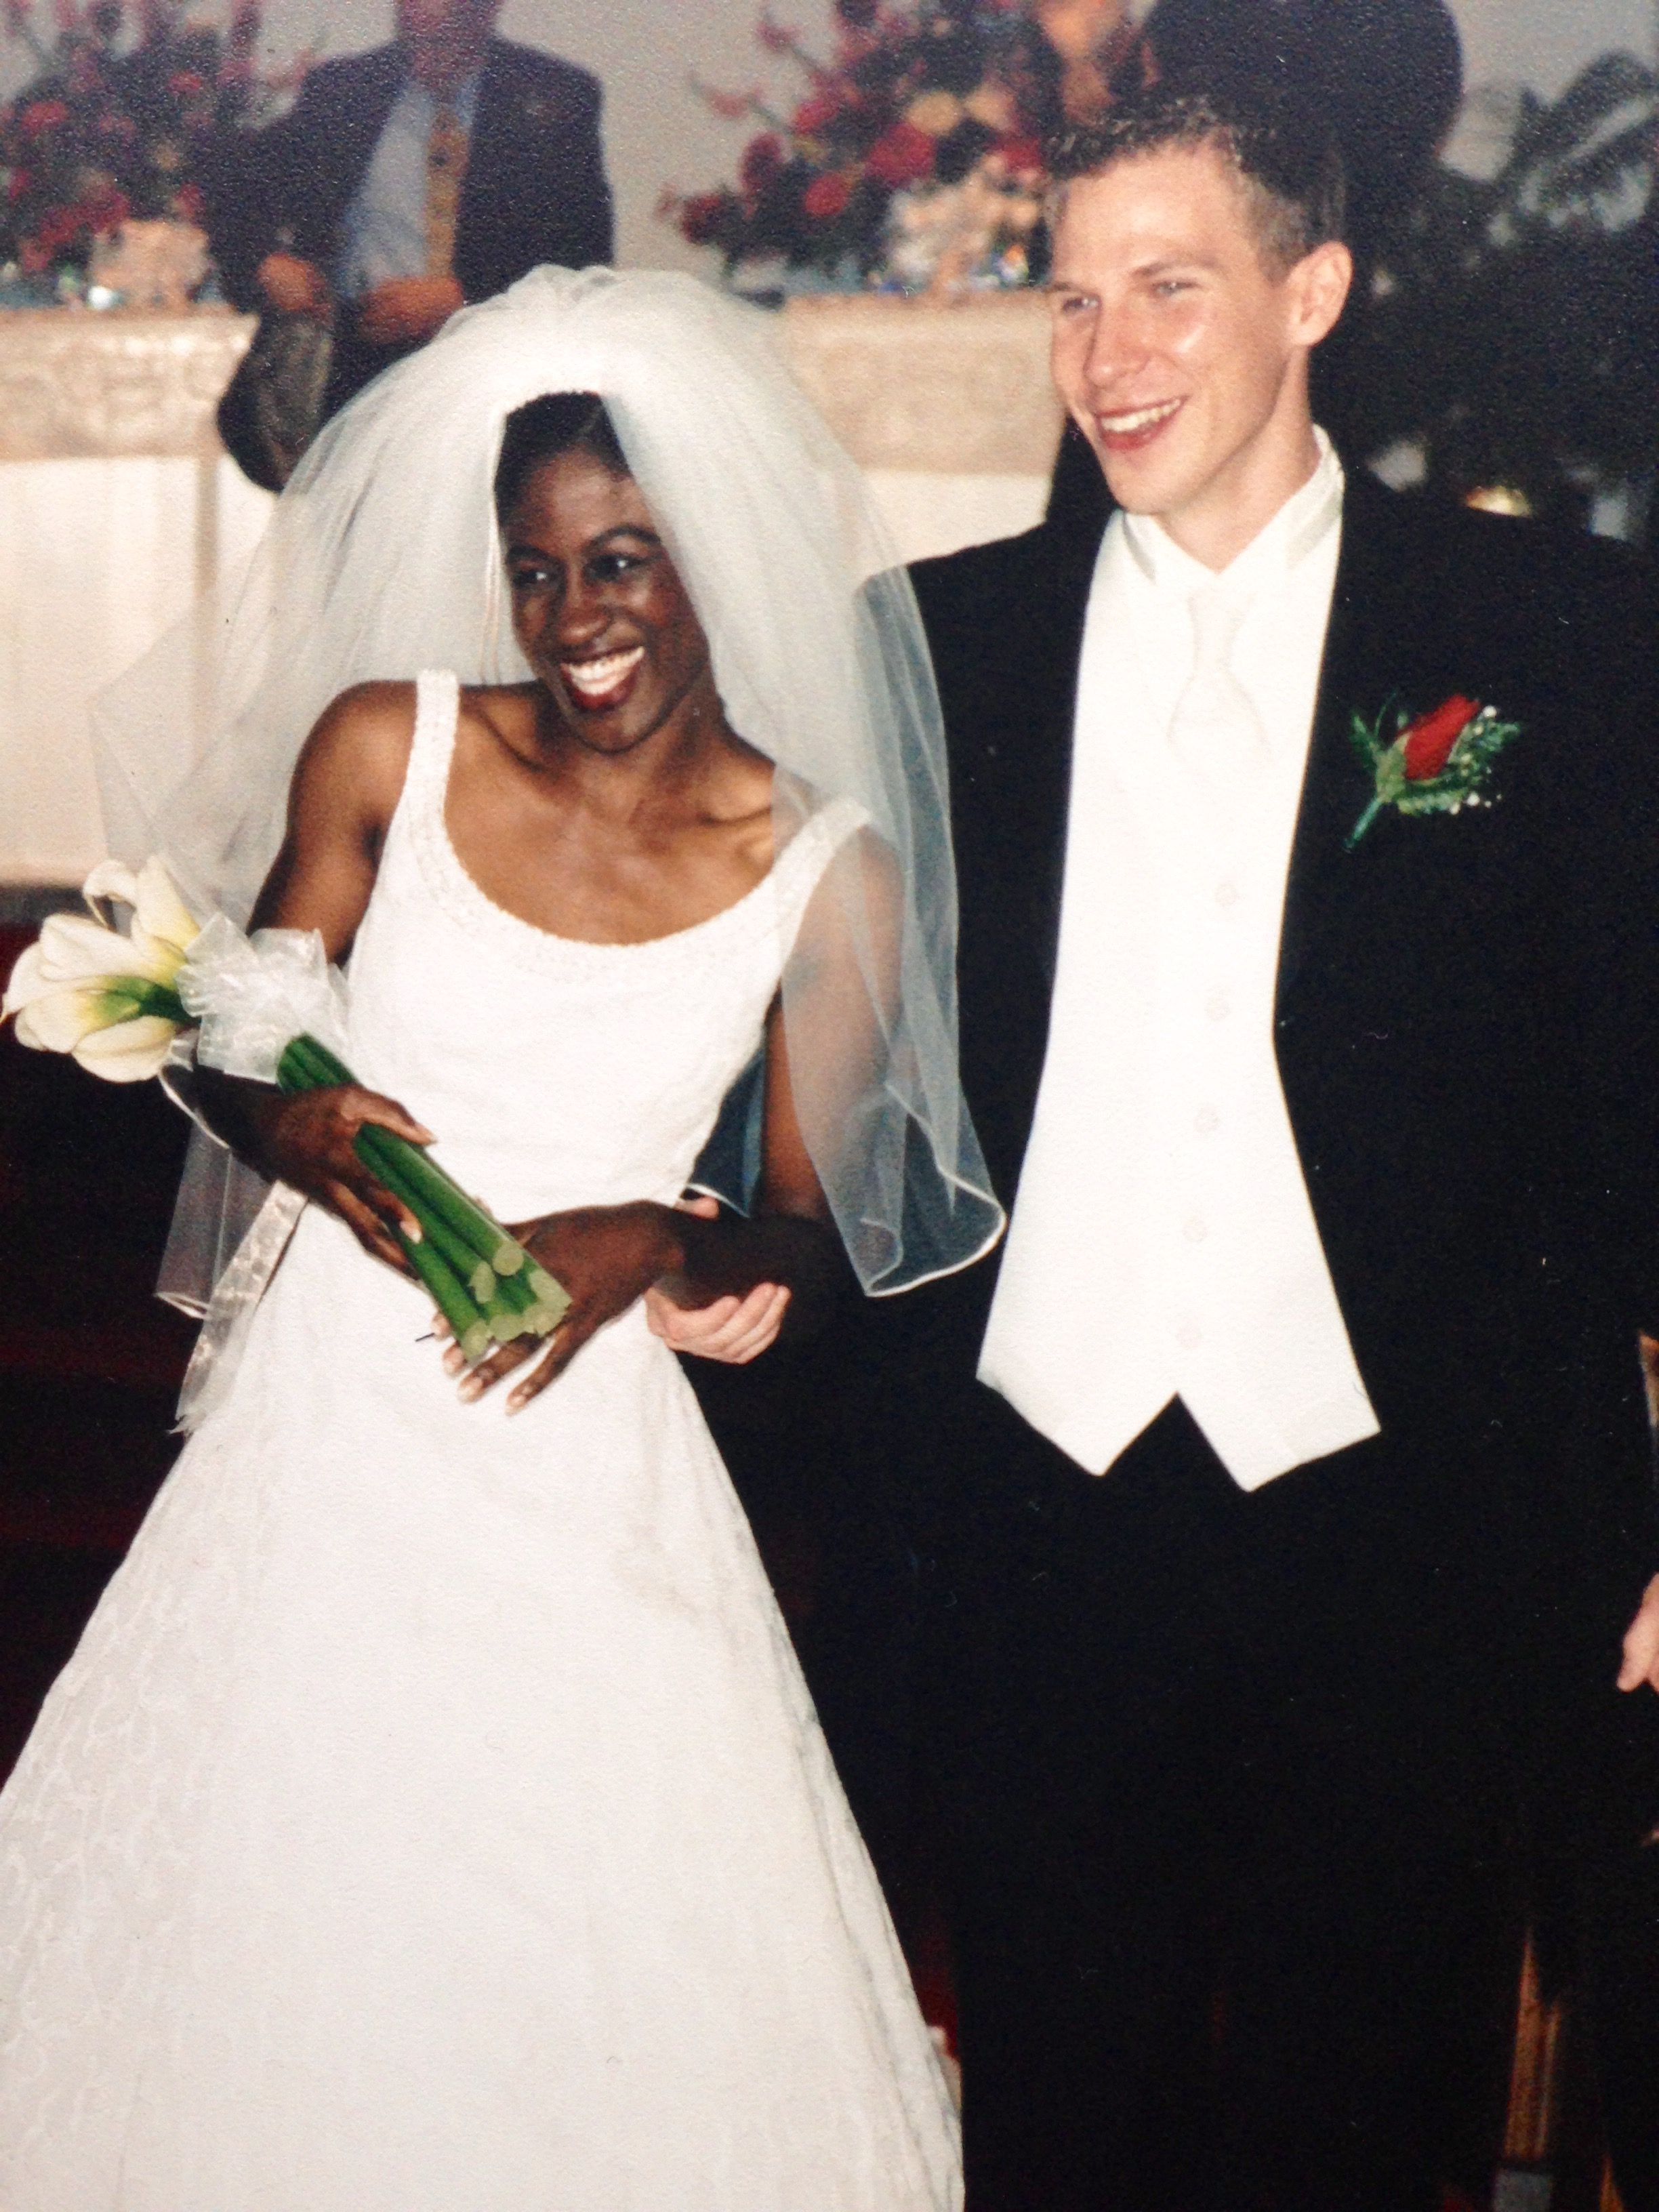 Can A Black Woman Marry A White Man? [VIDEO] Absolutely